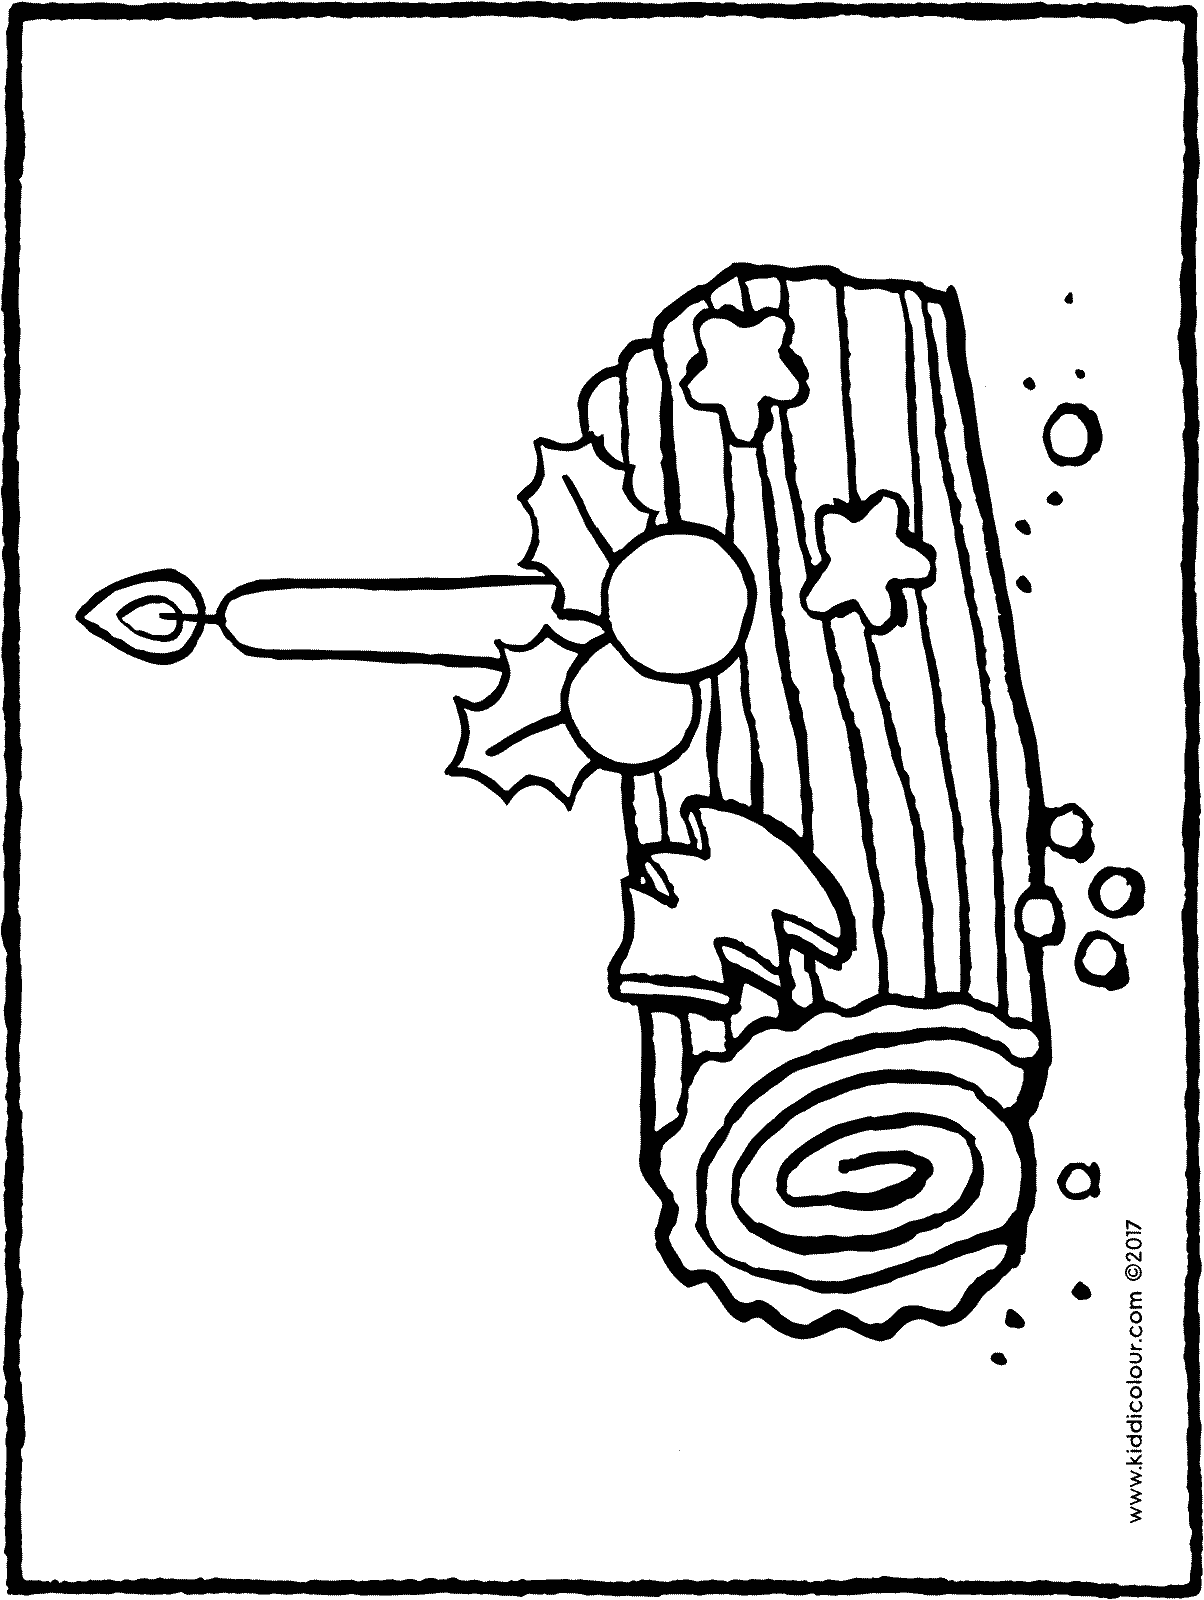 yule log colouring page page drawing picture 01H